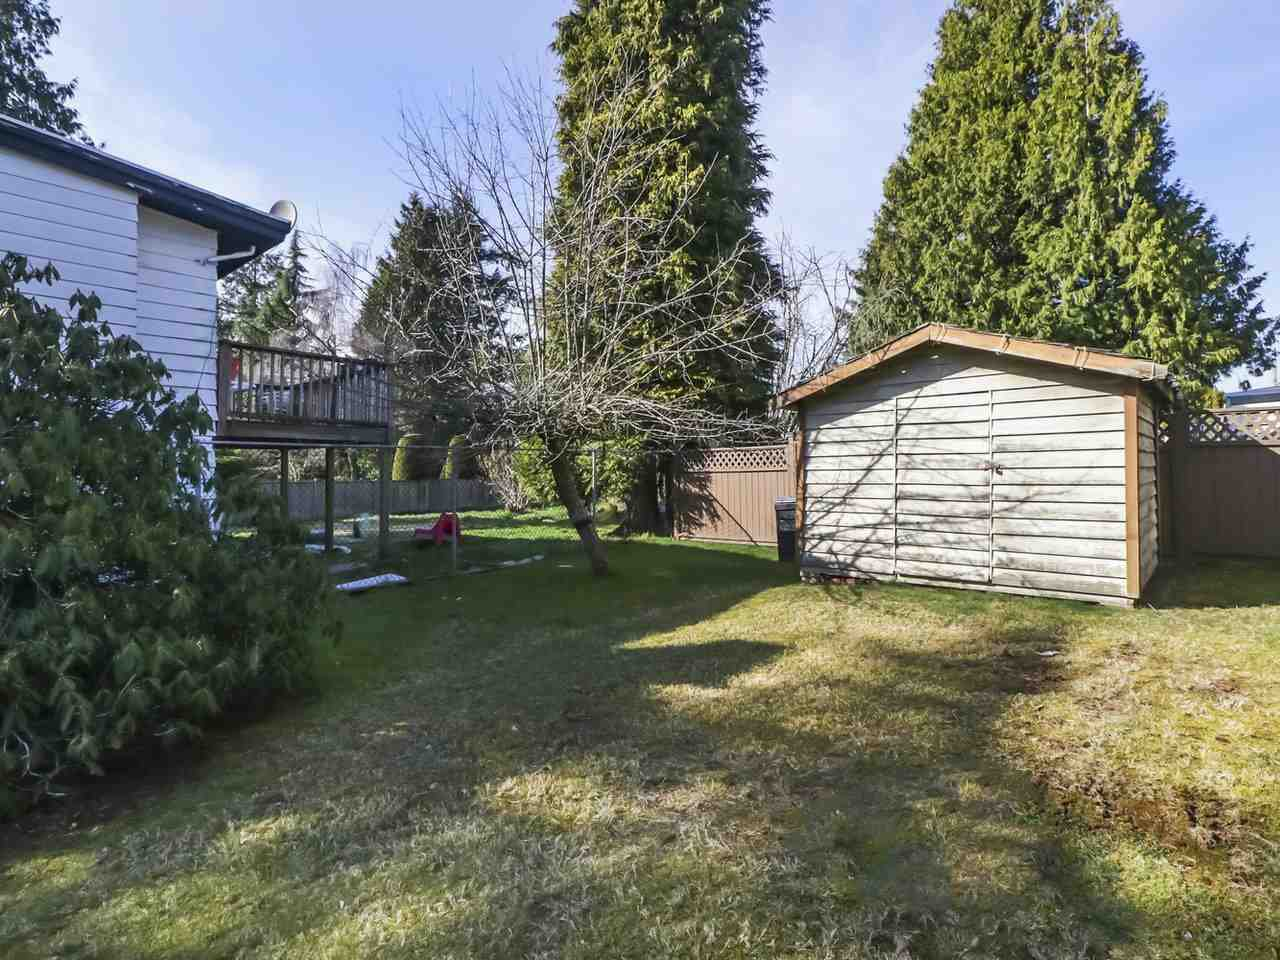 Photo 19: Photos: 730 SCHOOLHOUSE Street in Coquitlam: Central Coquitlam House for sale : MLS®# R2446516